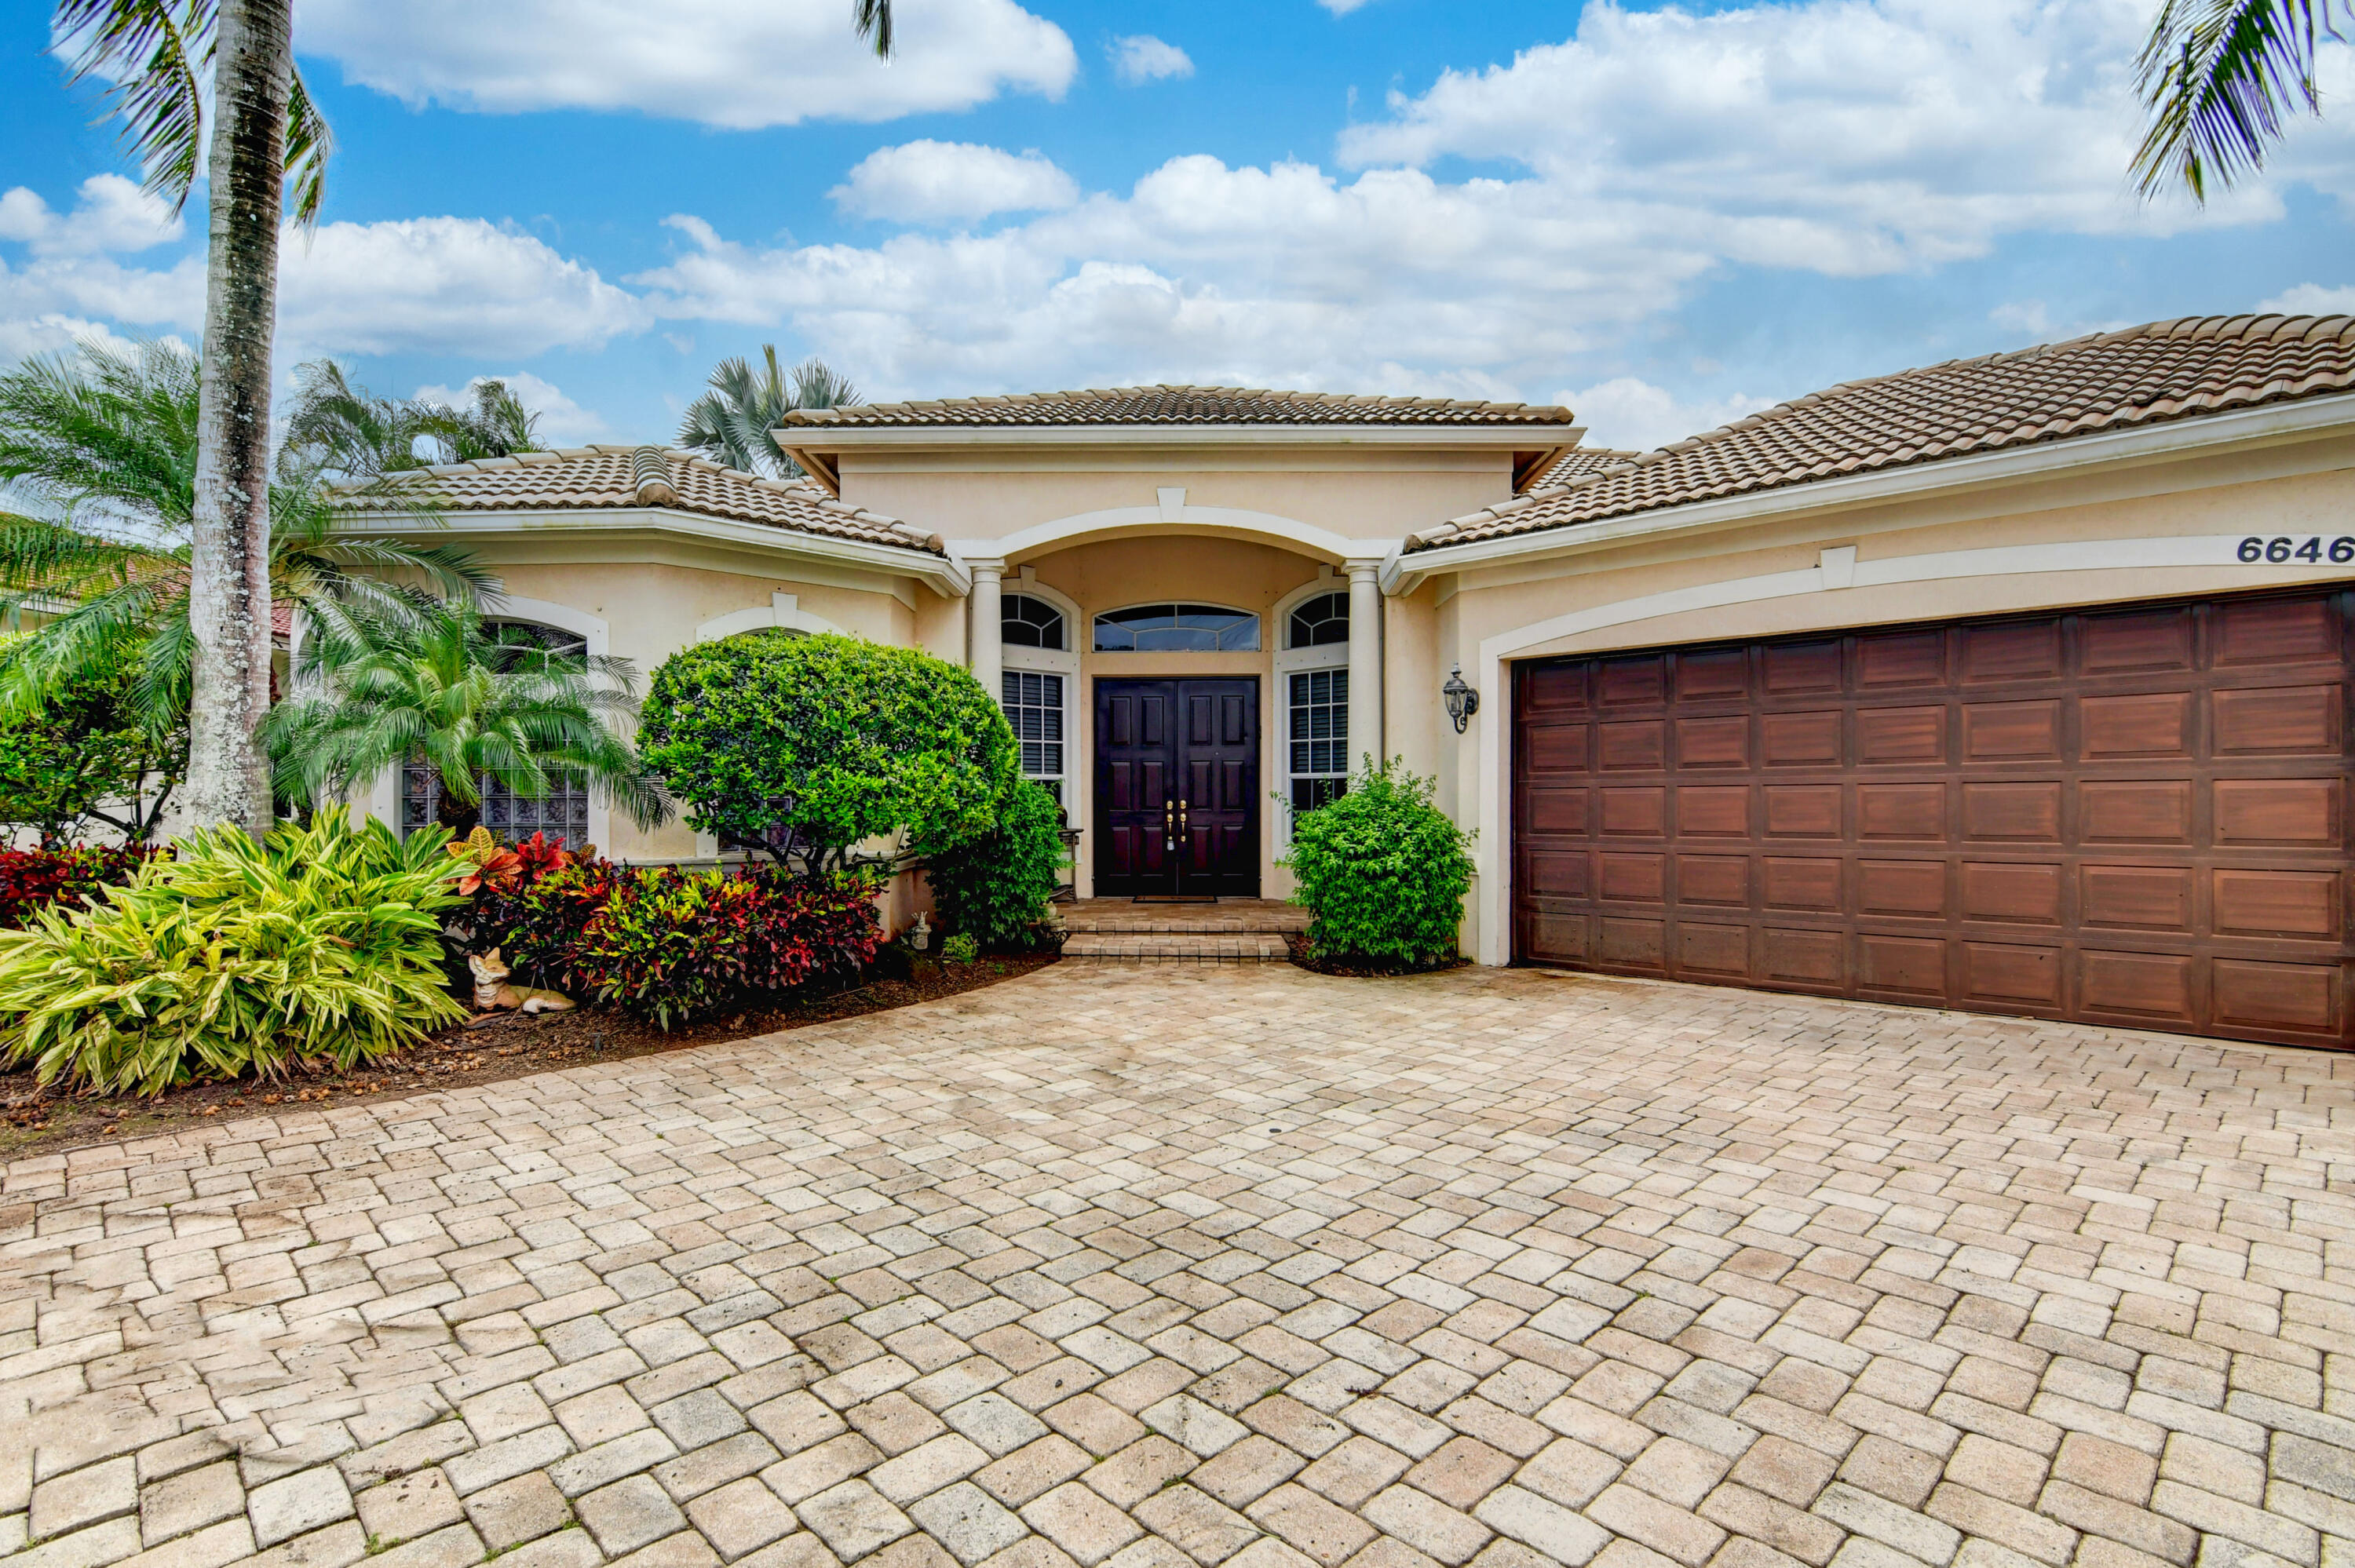 6646  Cobia Circle  For Sale 10743292, FL